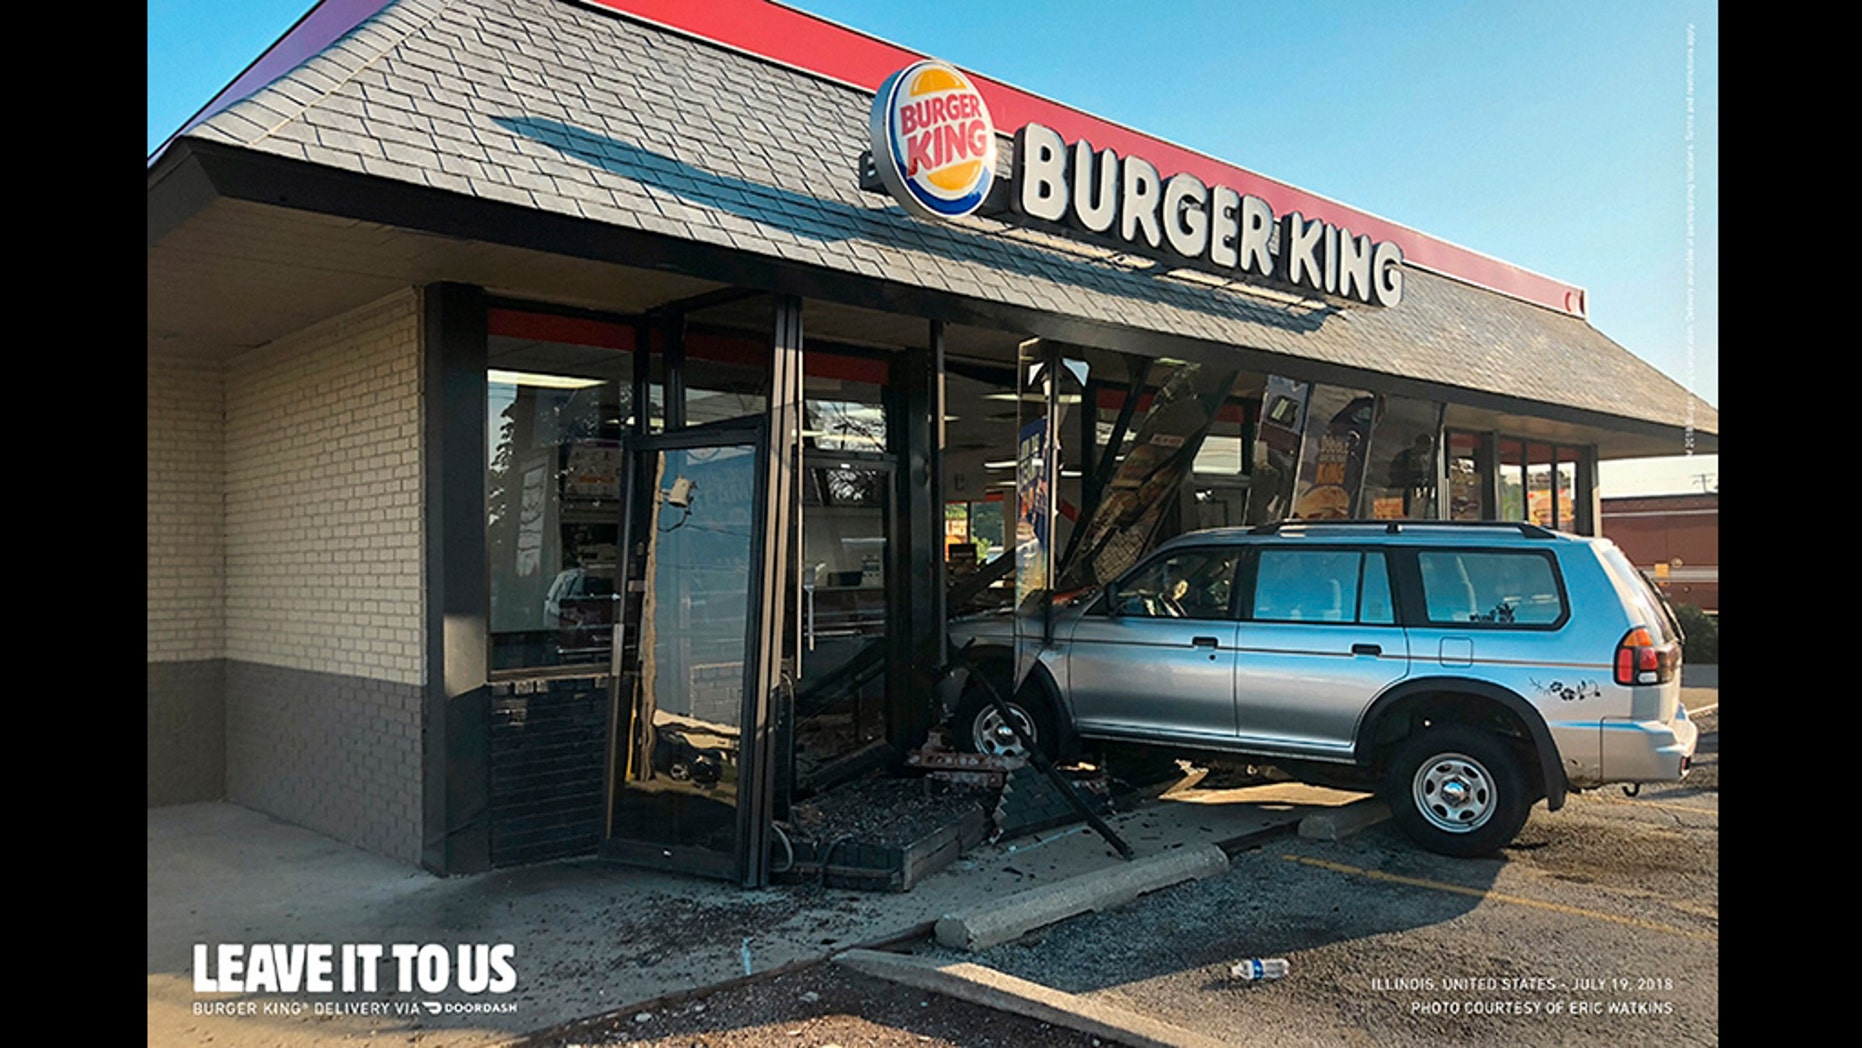 Burger King's newest ad campaignfeatures real car crashes at its restaurants.